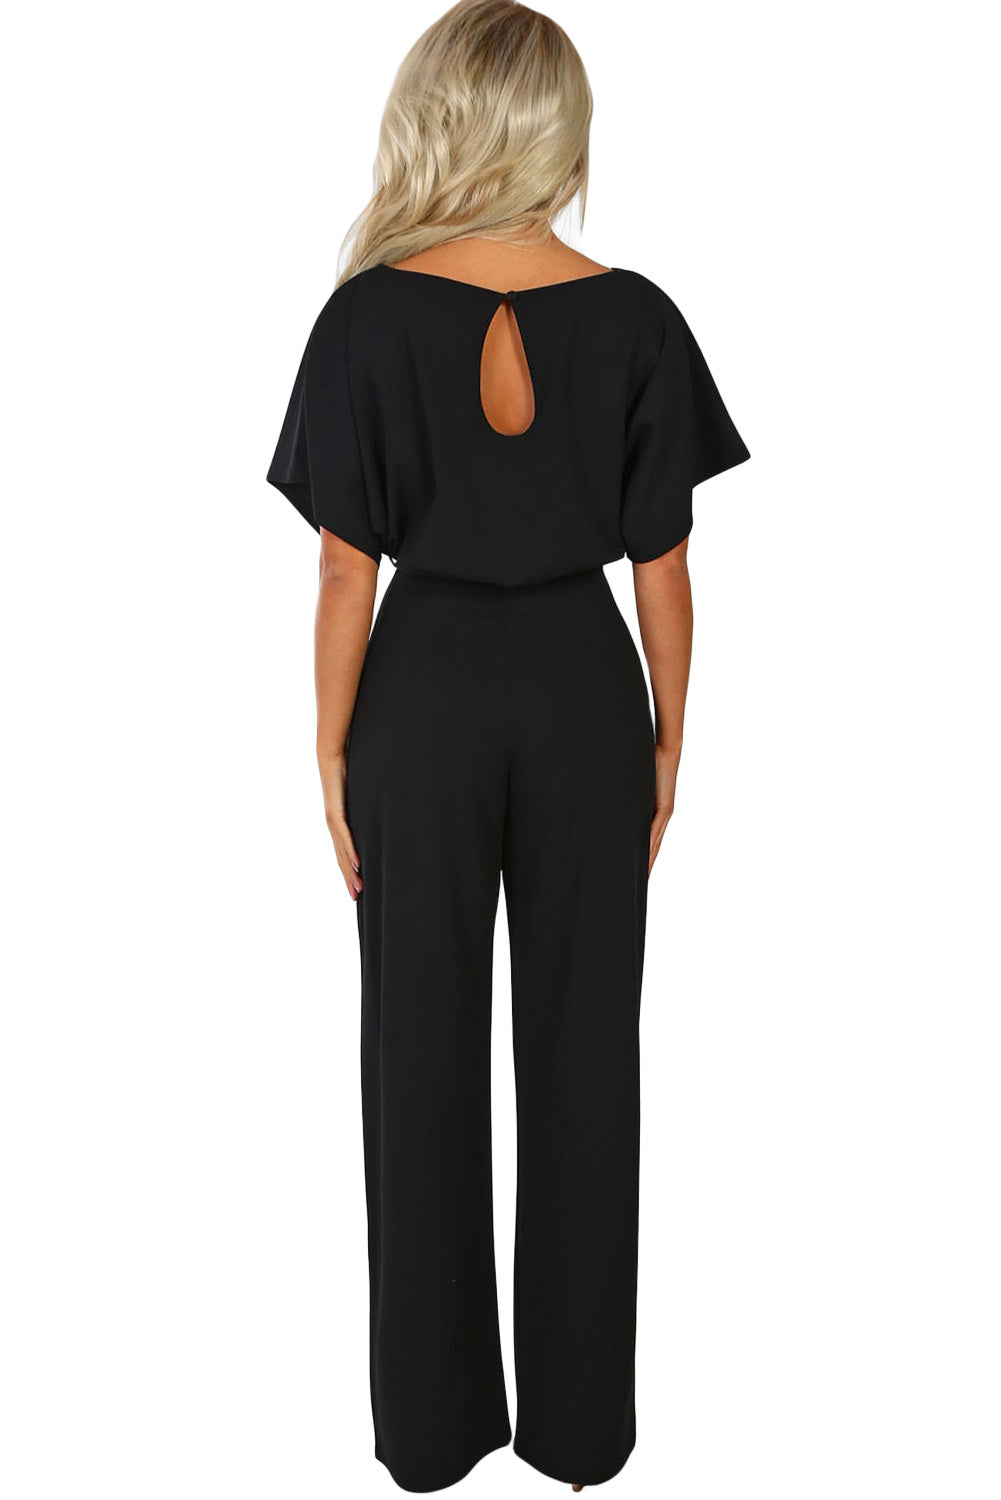 Black Oh So Glam Belted Wide Leg Jumpsuit